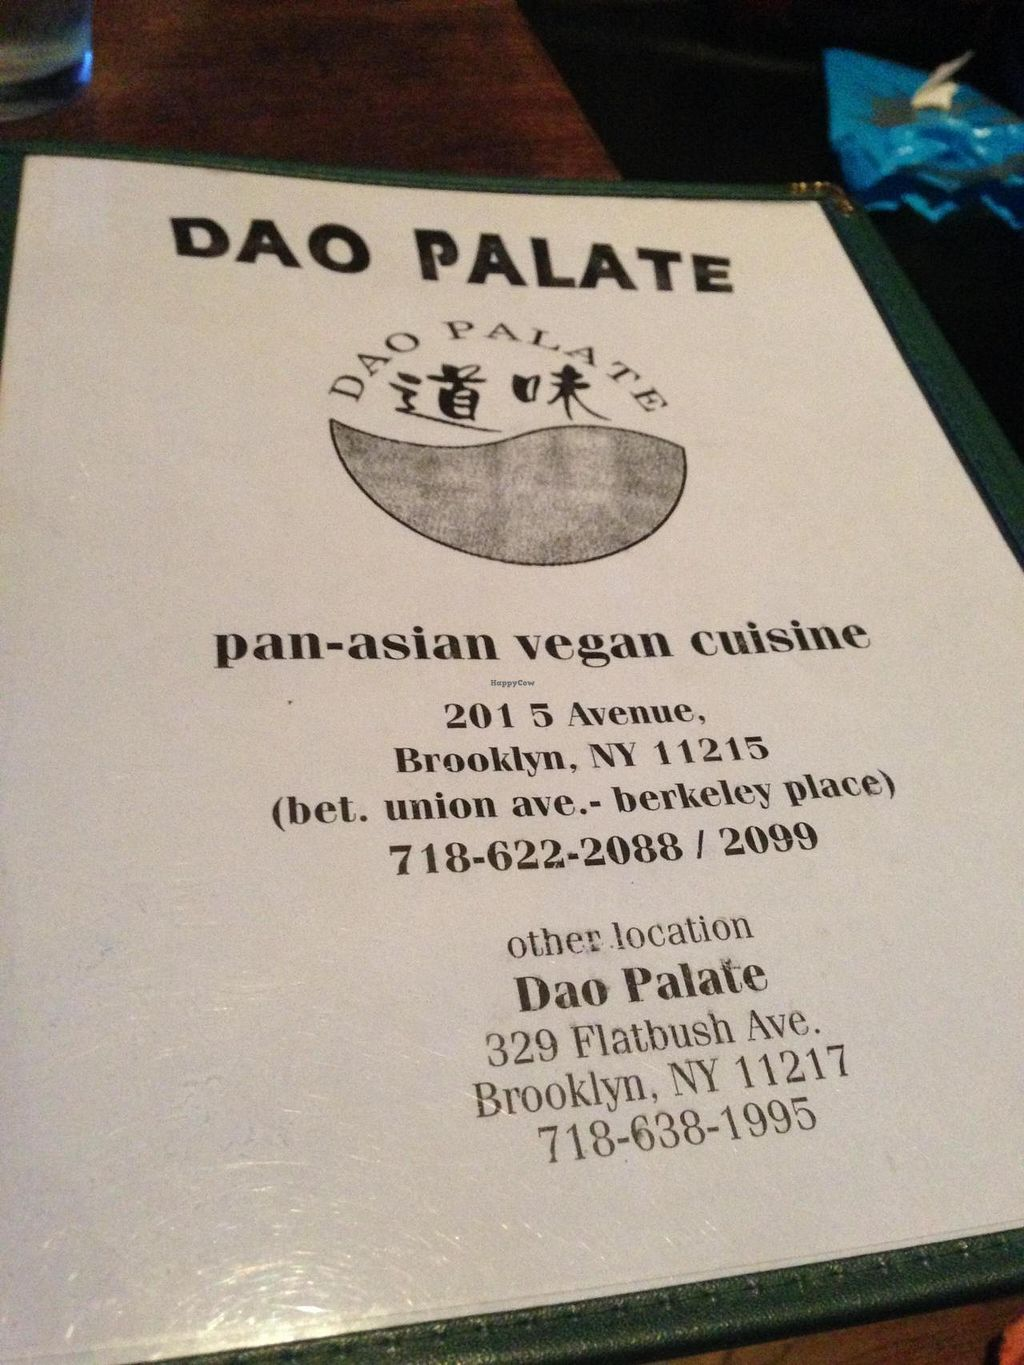 """Photo of CLOSED: Dao Palate - 5th Ave  by <a href=""""/members/profile/slo0go"""">slo0go</a> <br/>Menu <br/> August 24, 2014  - <a href='/contact/abuse/image/25292/78179'>Report</a>"""